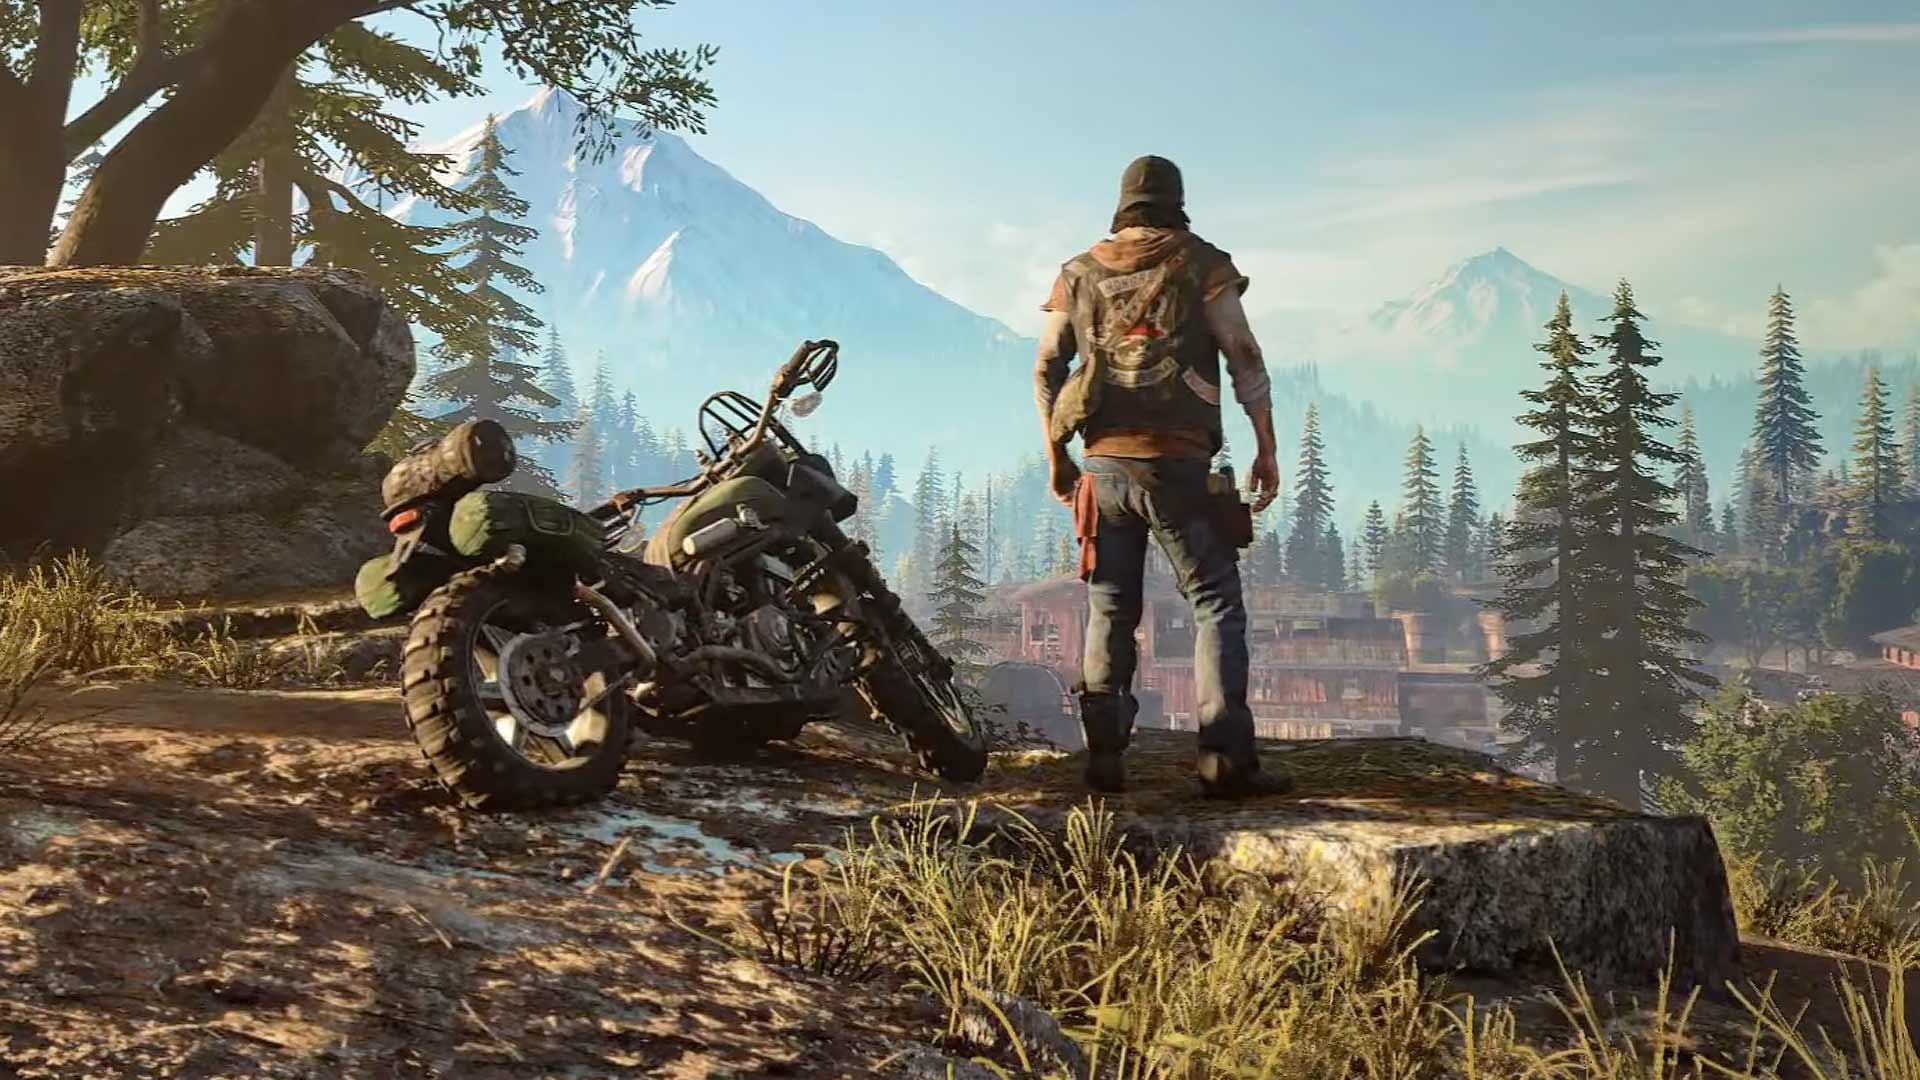 Days Gone release date pushed back